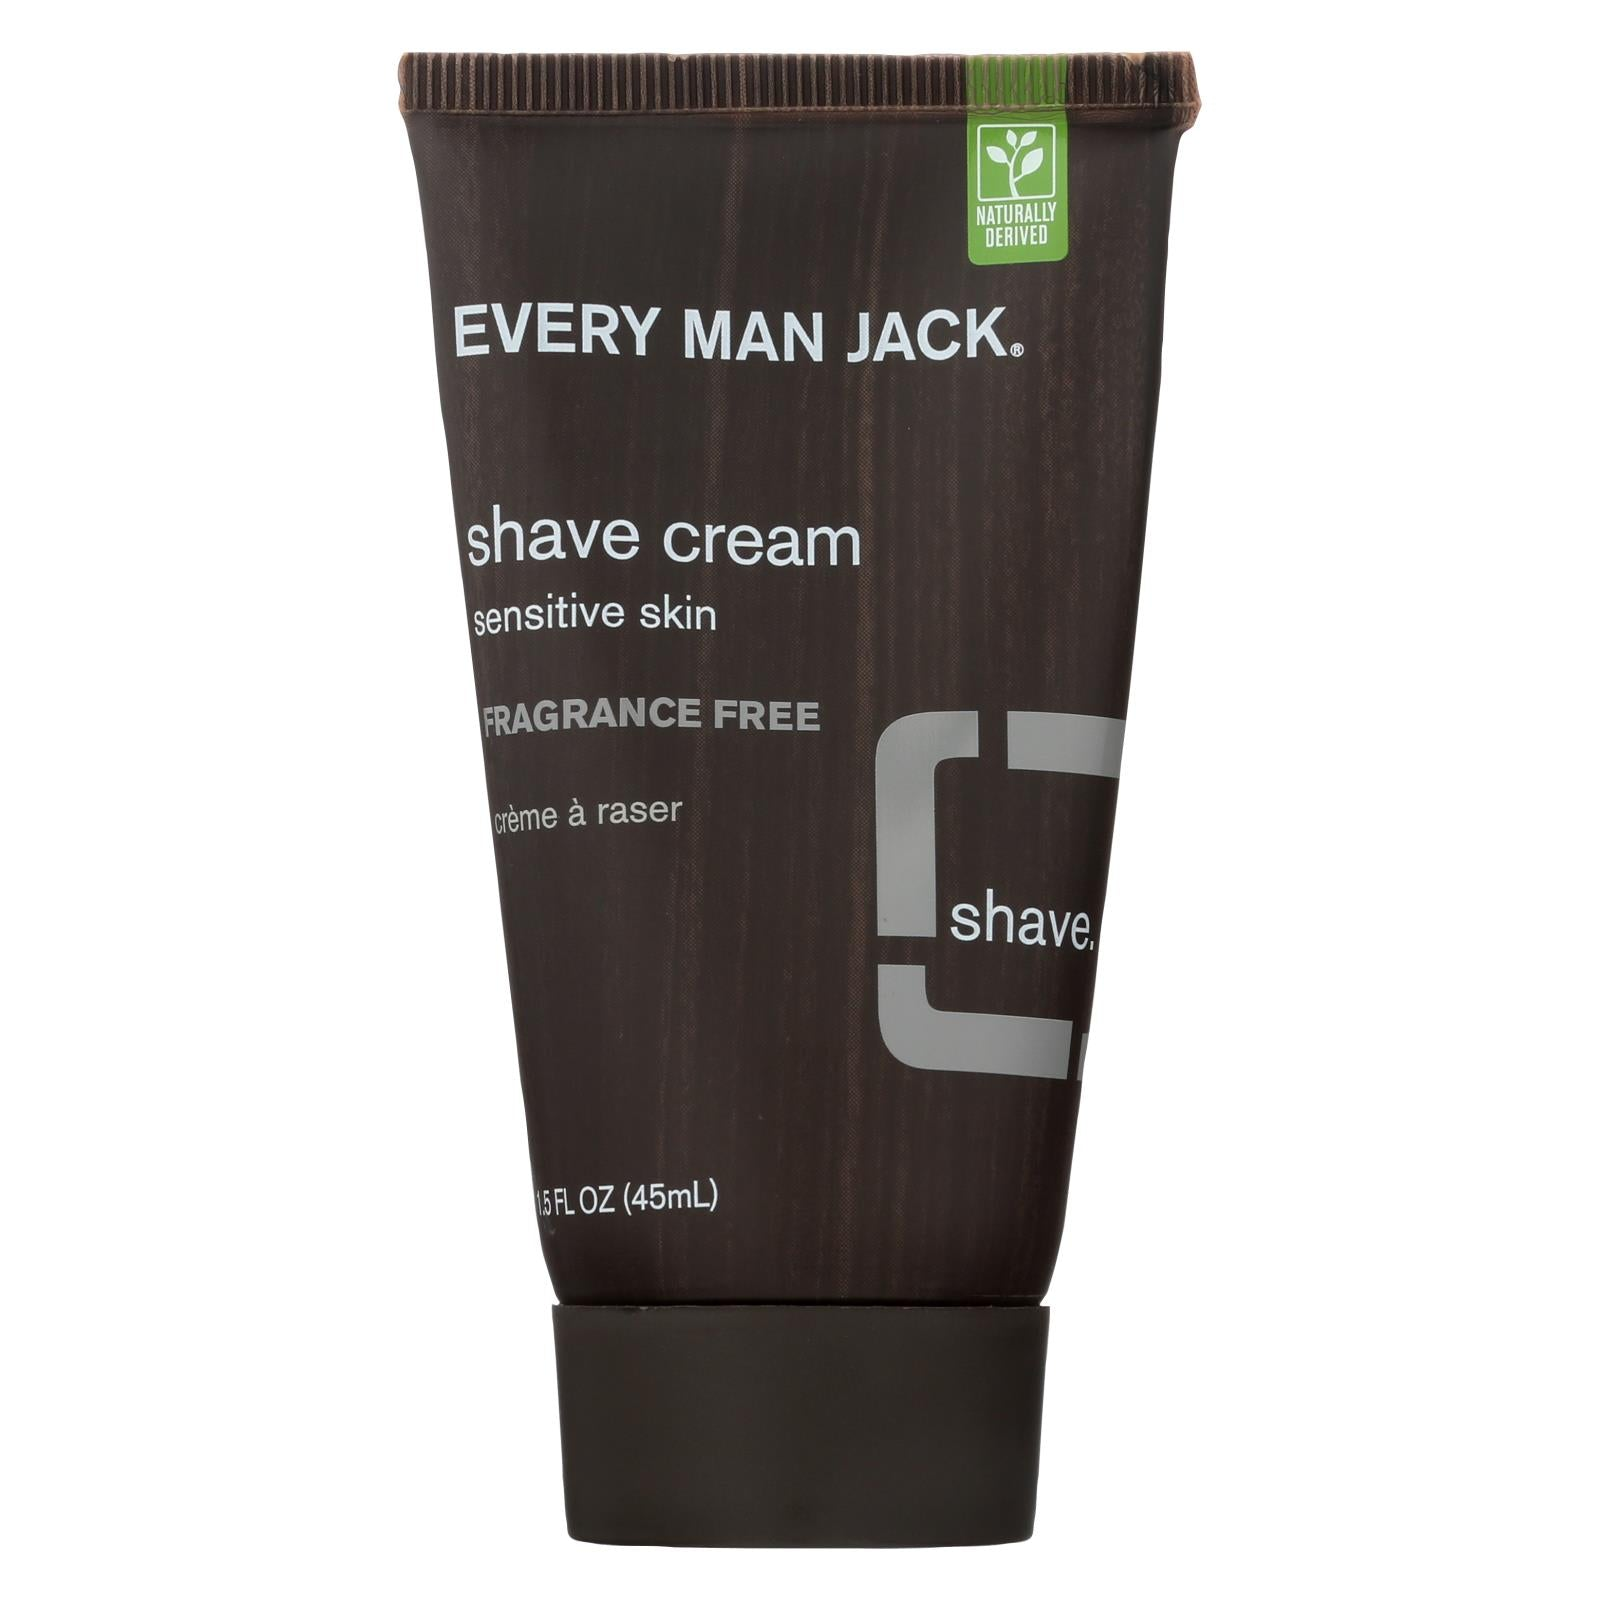 Buy Every Man Jack Shave Cream Fragrance Free - Shave Cream - 1 FL oz. - Shaving and Hair Removal from Veroeco.com